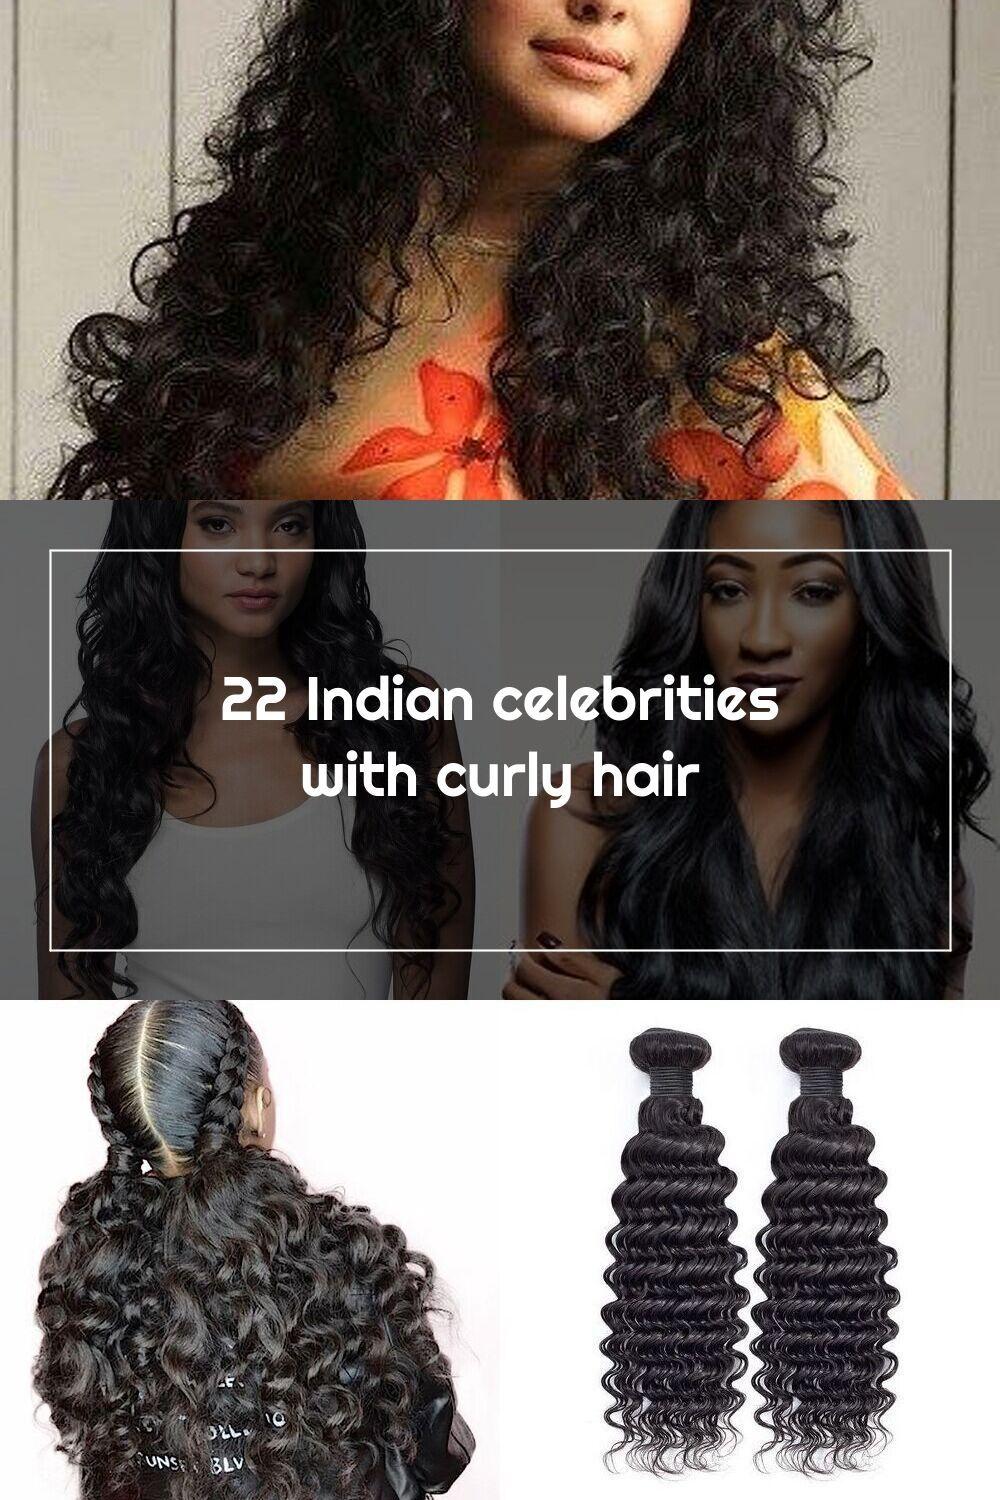 Rima Kallingal Indian Celebrity Curly Hair In 2020 Curly Hair Styles Indian Celebrities Indian Hairstyles